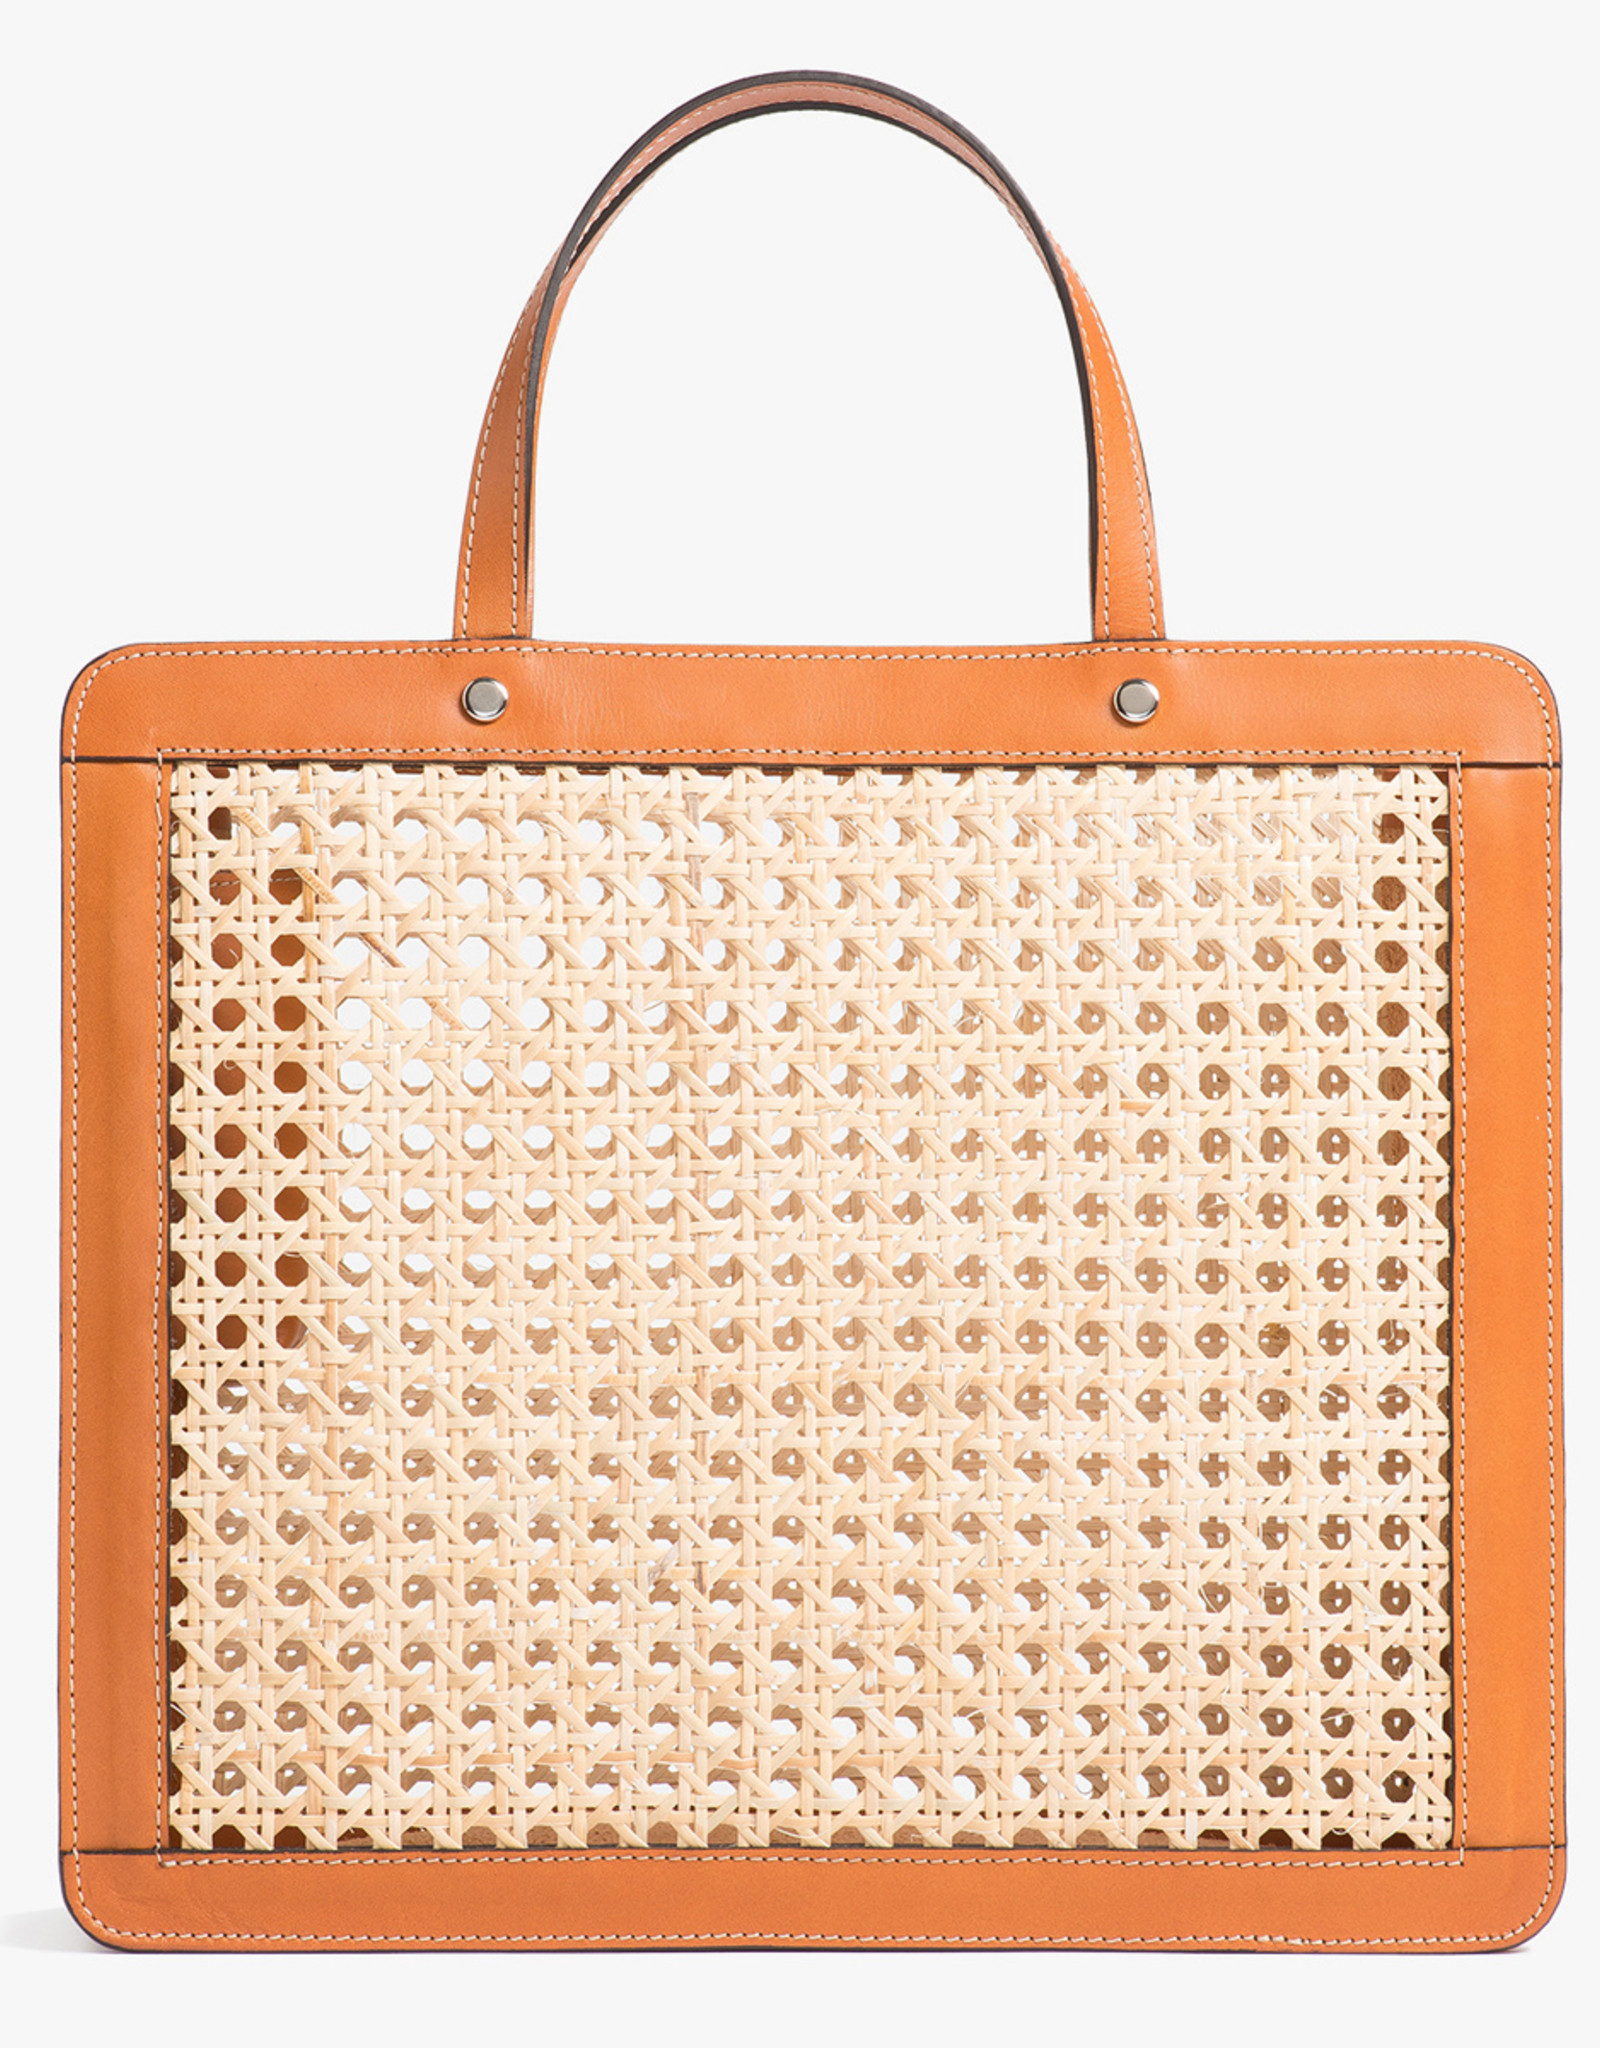 Classic Rattan Bag by Palmgrens | Tan leather